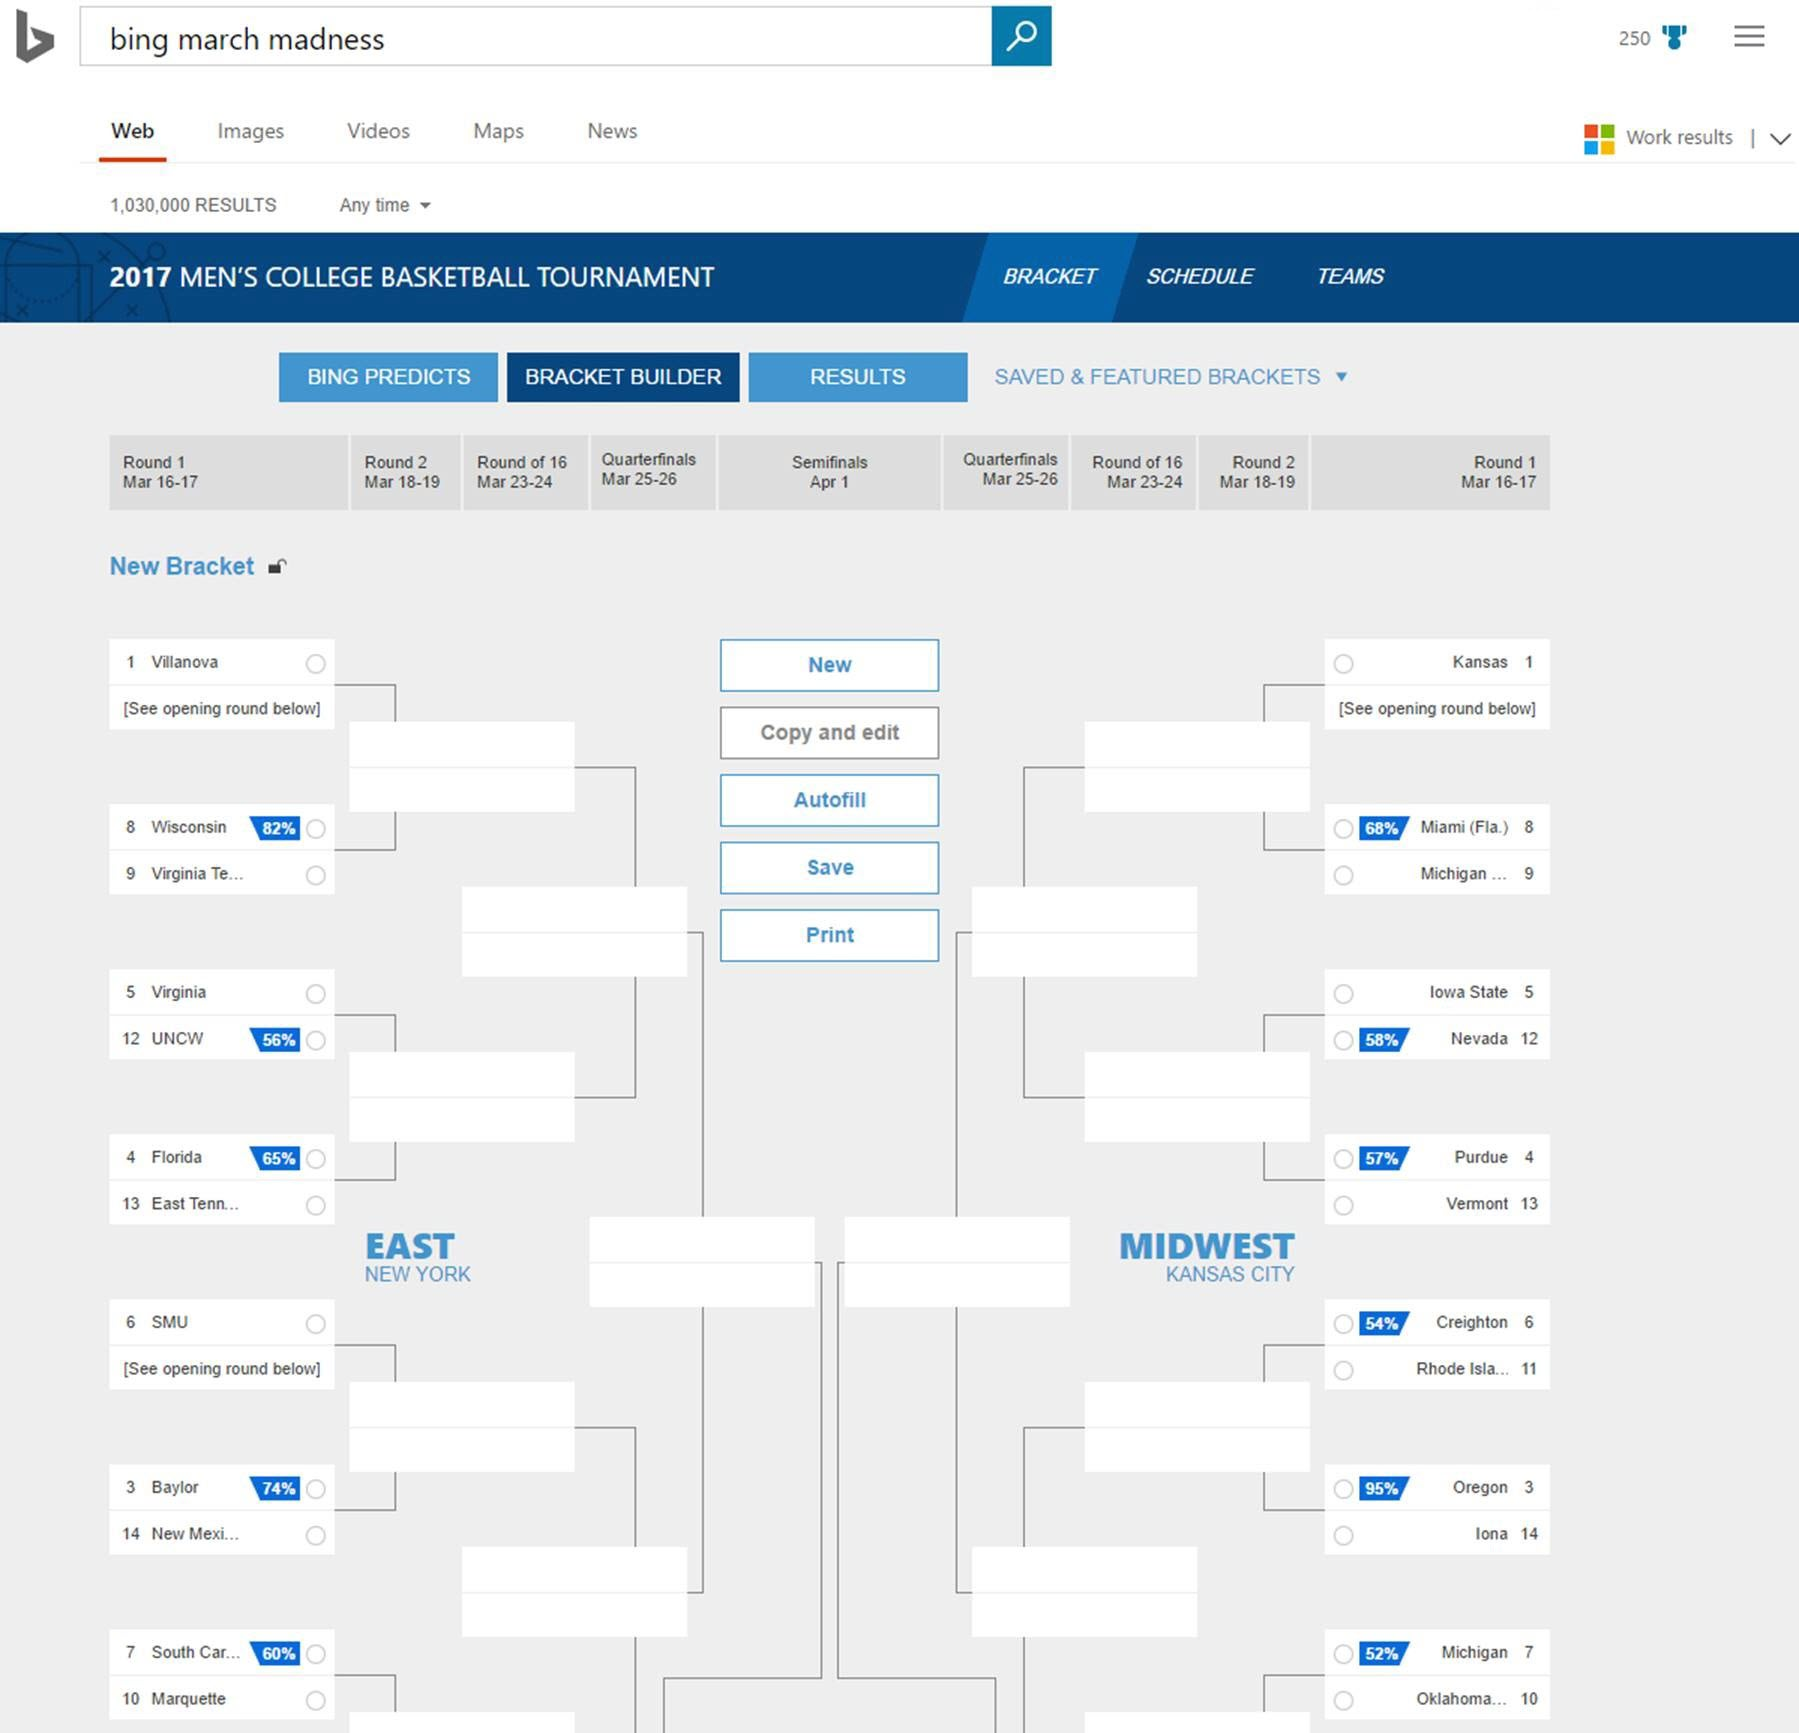 Bing March Madness